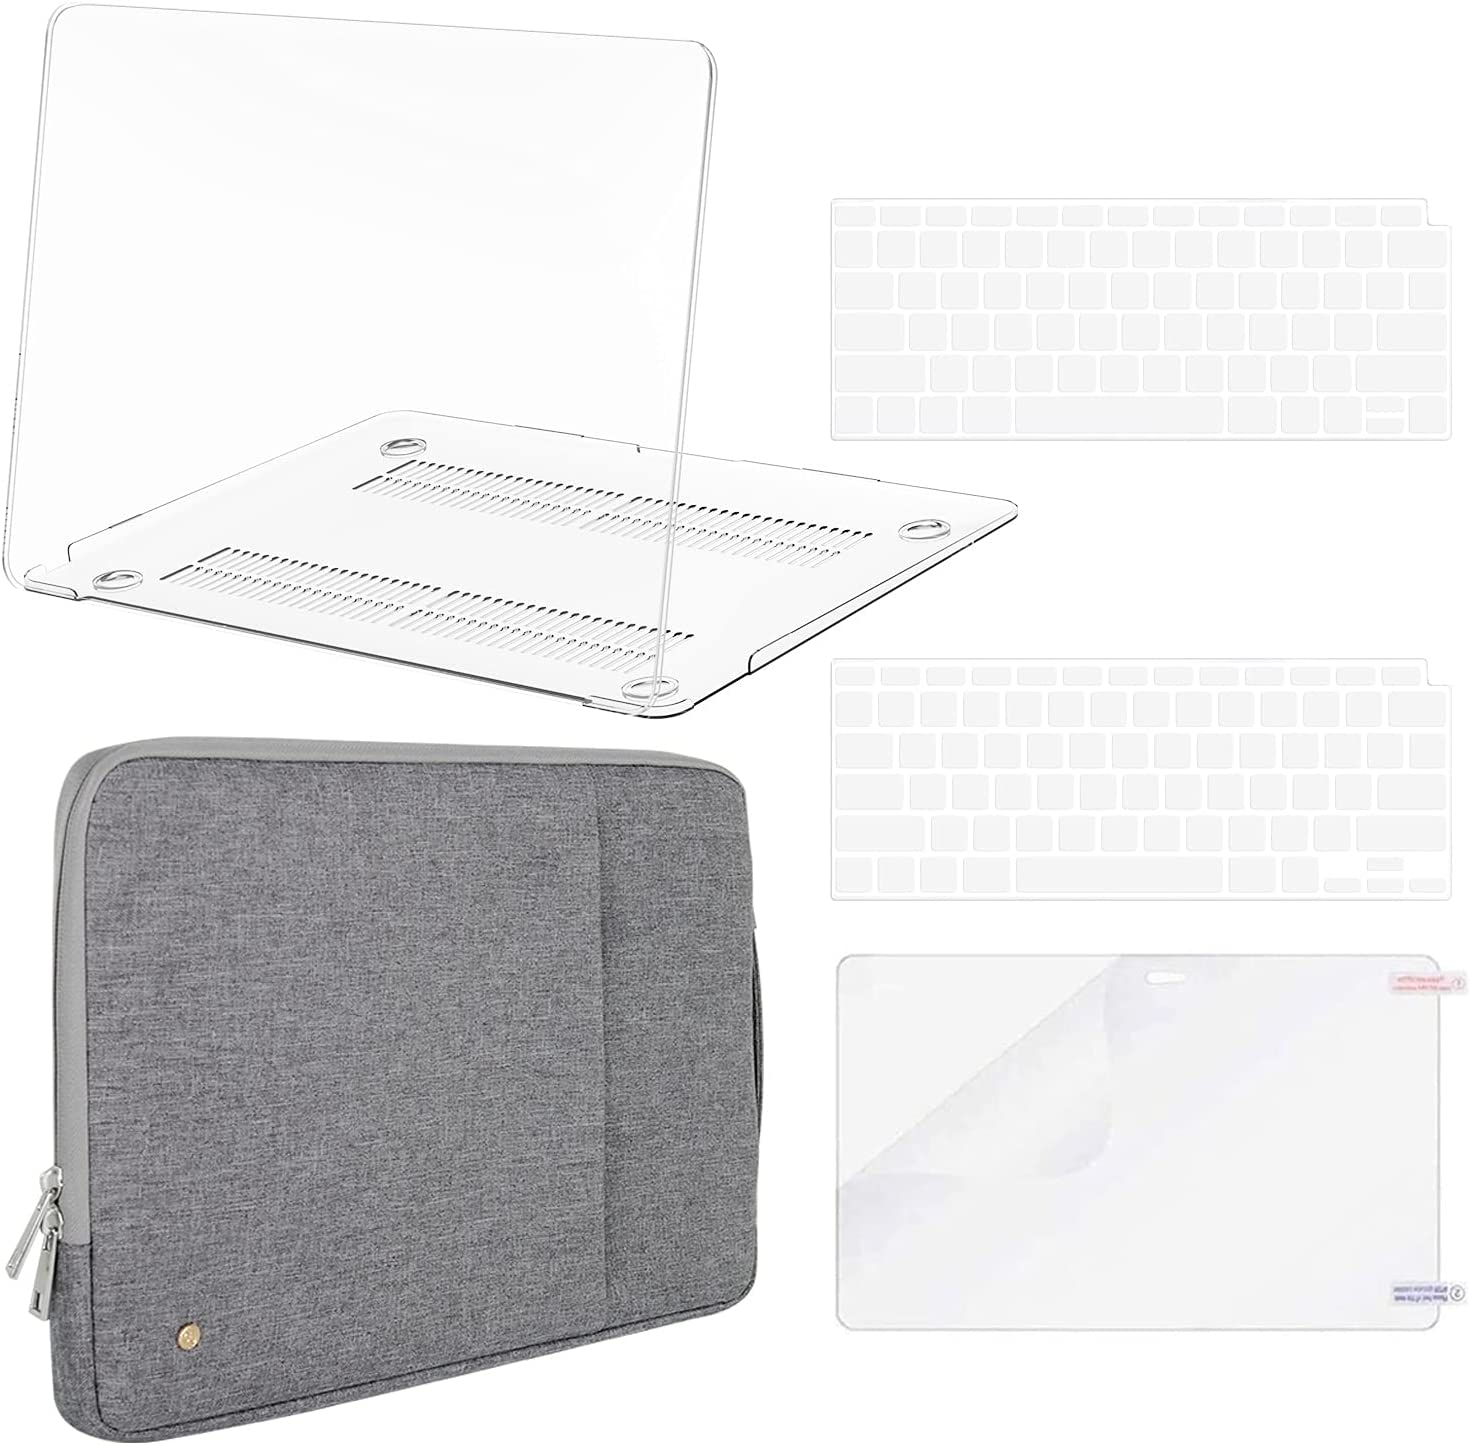 B BELK MacBook Air 2020 Case (Model: A2337 M1 A2179 A1932)+ Shock Resistant Sleeve Bag, MacBook Air 13 inch Case 2019 2018, Laptop Plastic Hard Shell Case + Keyboard Cover + Screen Protector, Clear